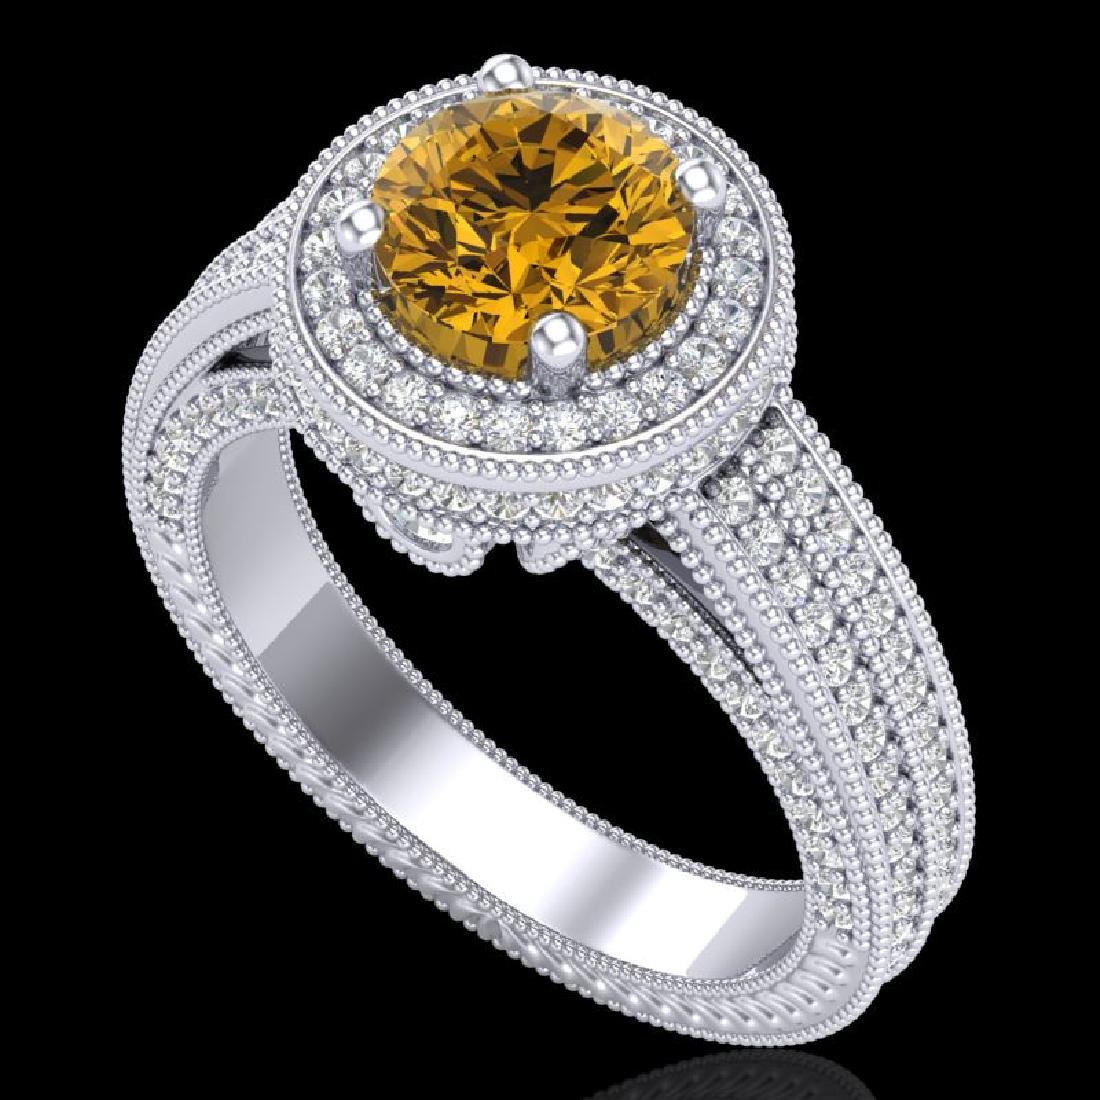 2.8 CTW Intense Fancy Yellow Diamond Engagement Art